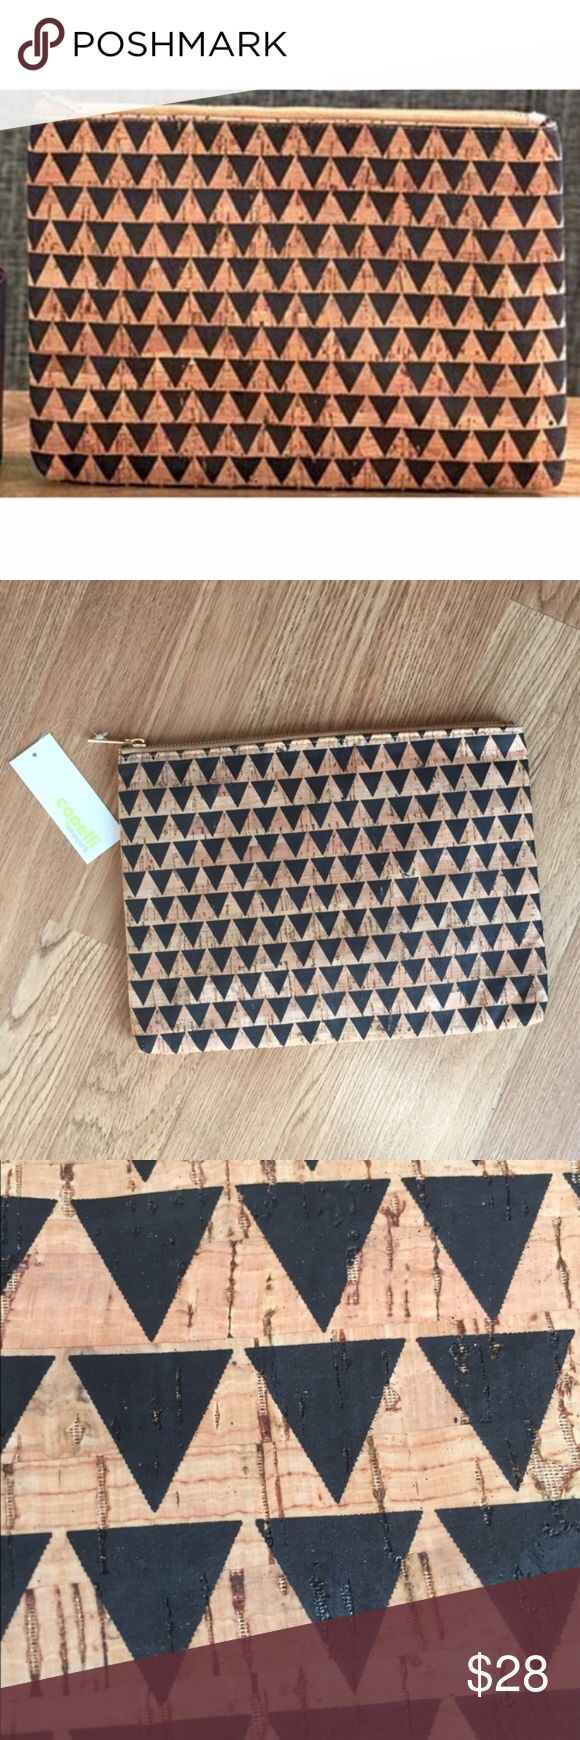 Triangle Cork Clutch This clutch has a slim construction that makes it easy to carry all day & night, has a fully lined interior with a small zip pocket, zip top closure, exterior is cork material. 11.25in(L) 8.5in(H) 1in(W)  *NO OFFERS ON BUNDLES Skull & Arrow Shop Bags Clutches & Wristlets